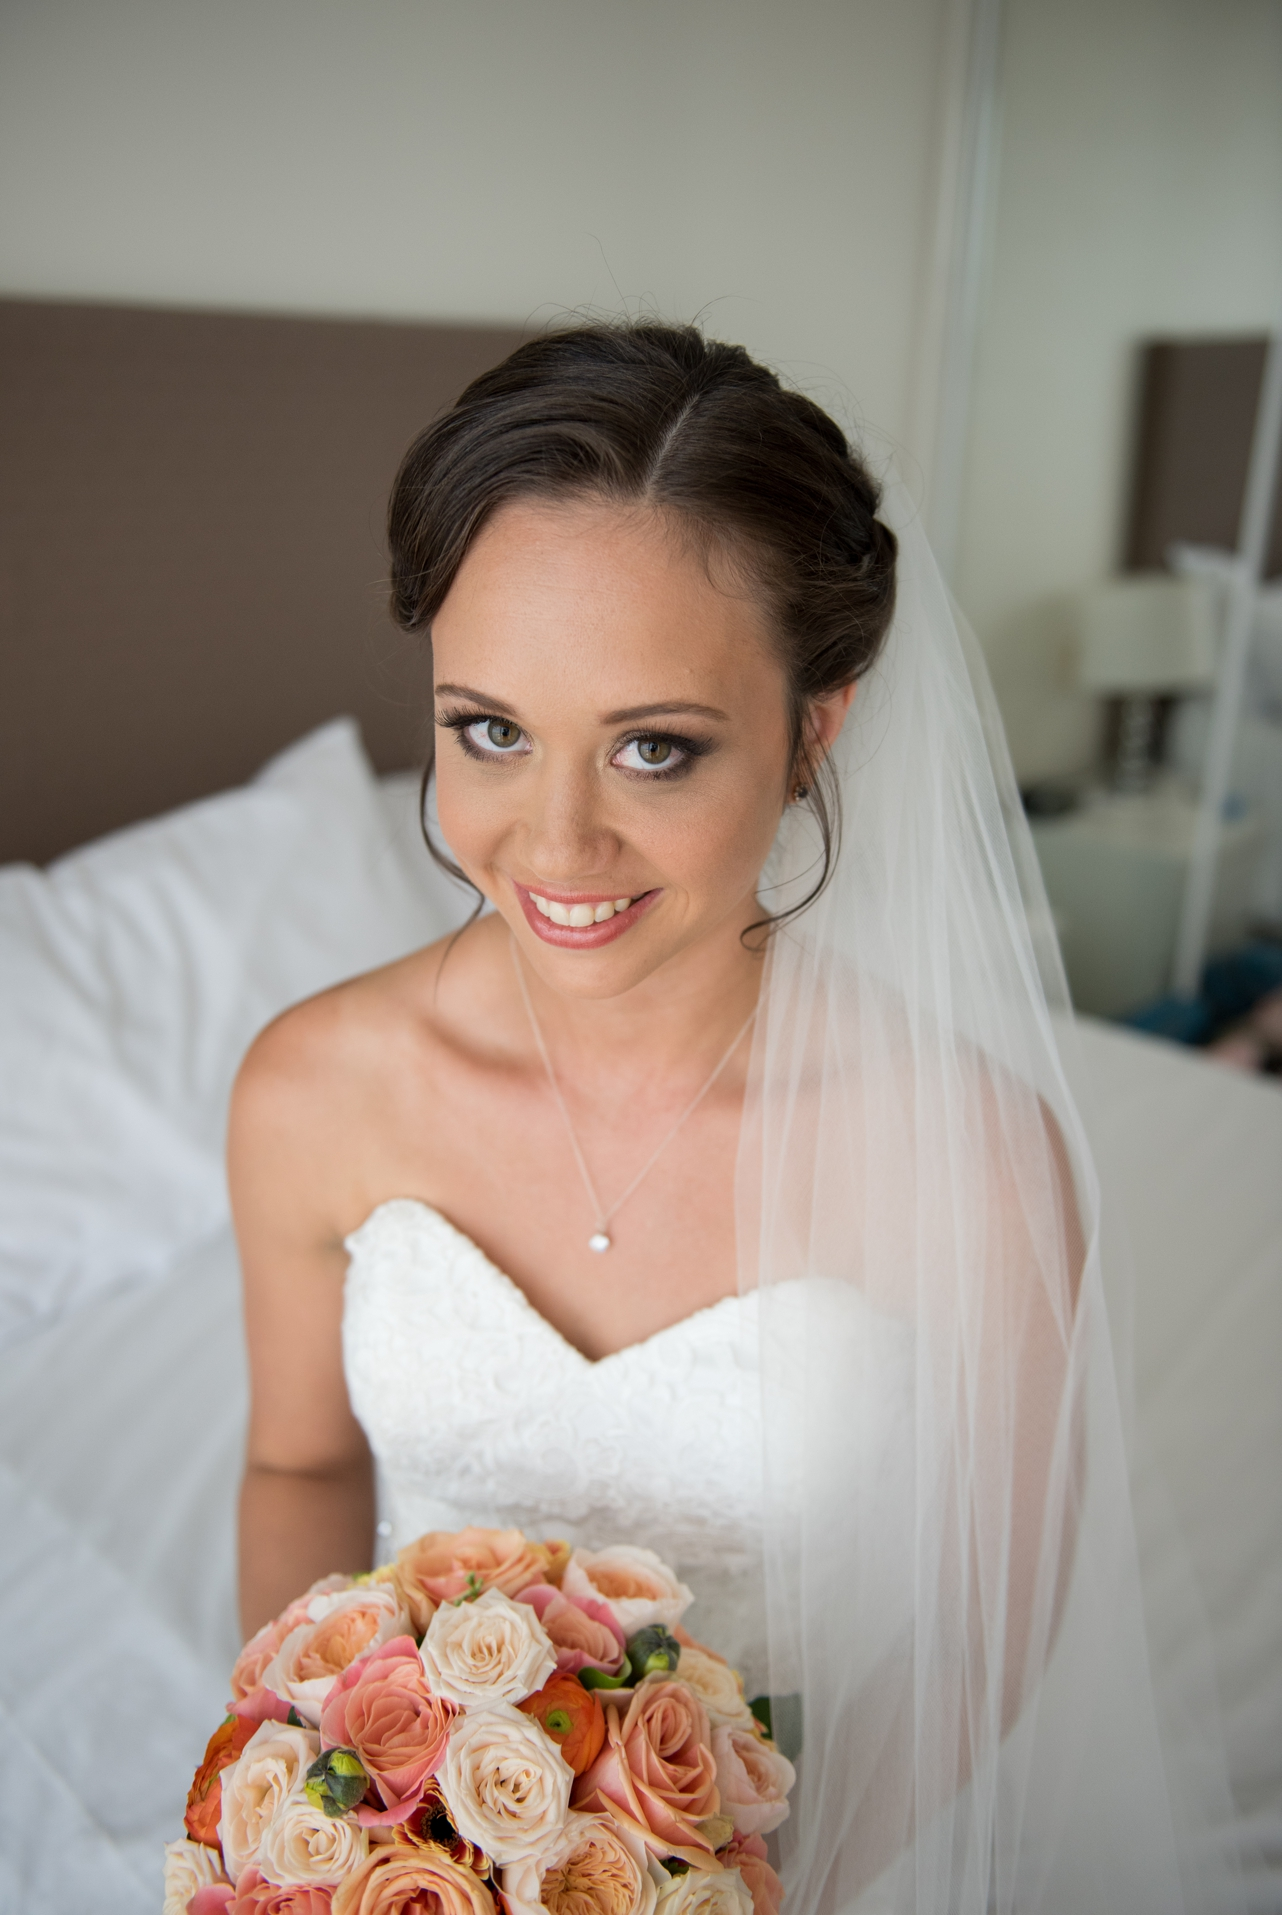 Bride_looking_at_The_camera_smiling